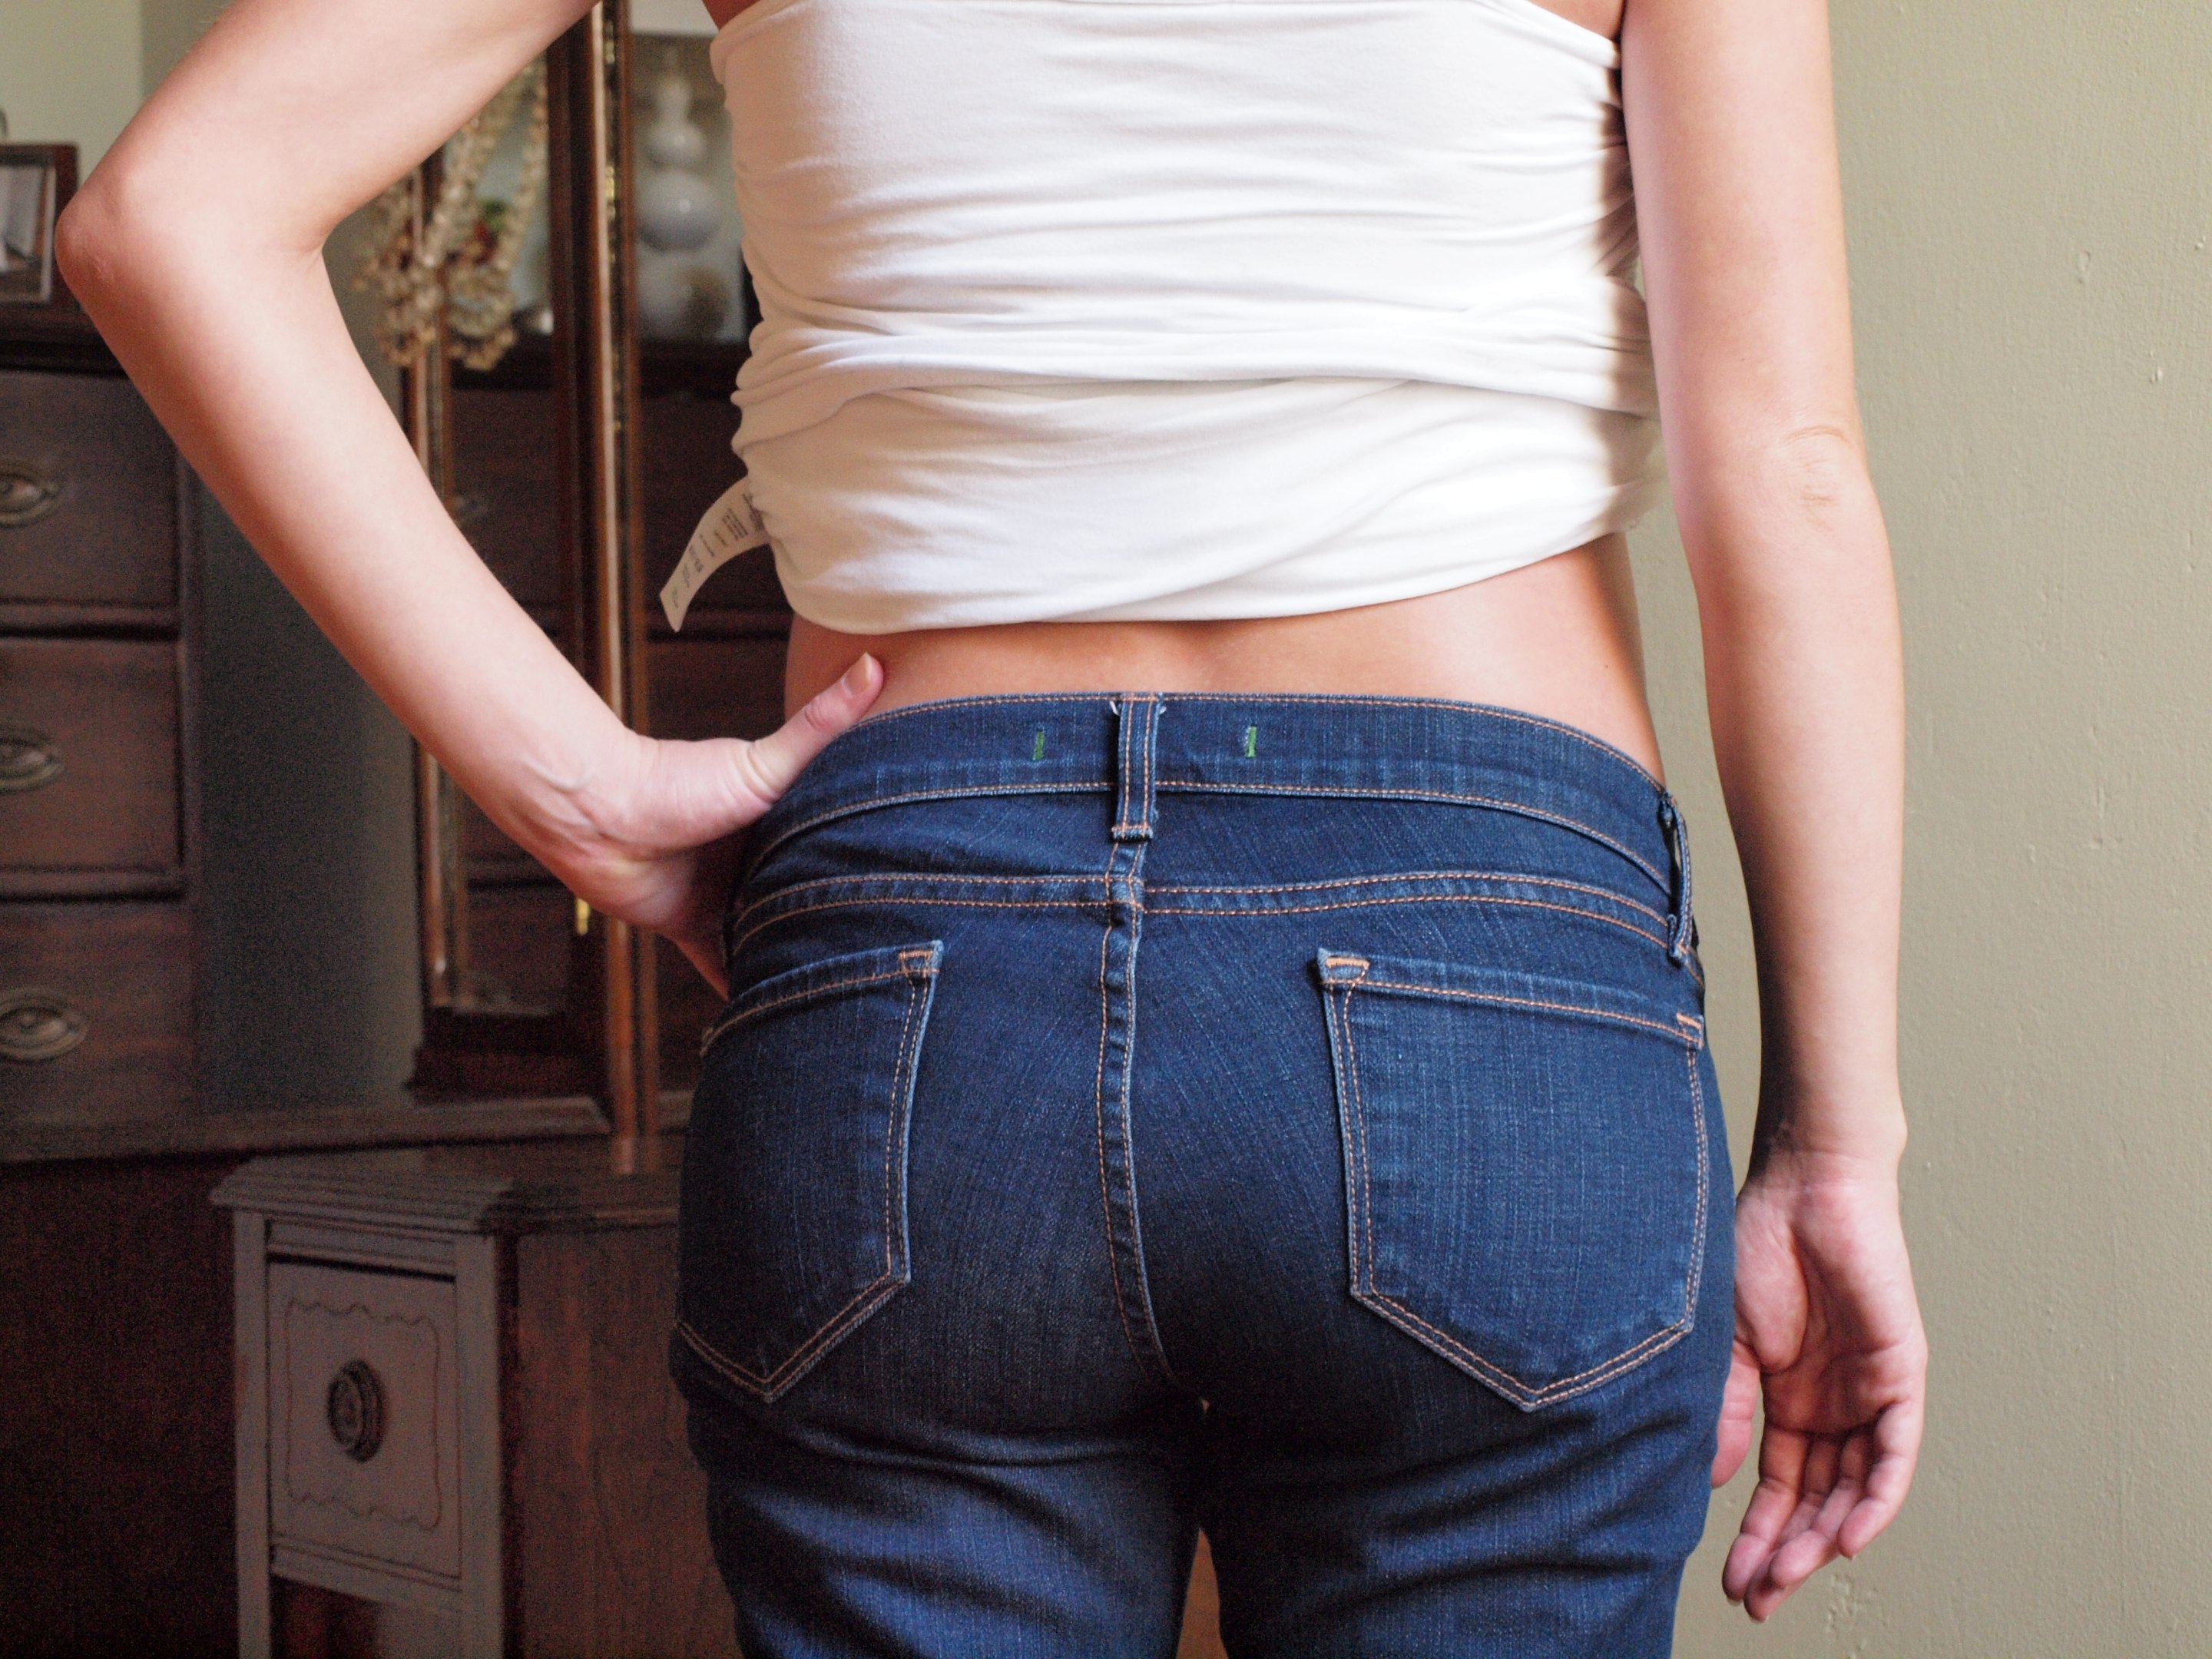 How to Be Well Looked Through Jegging Jeans?